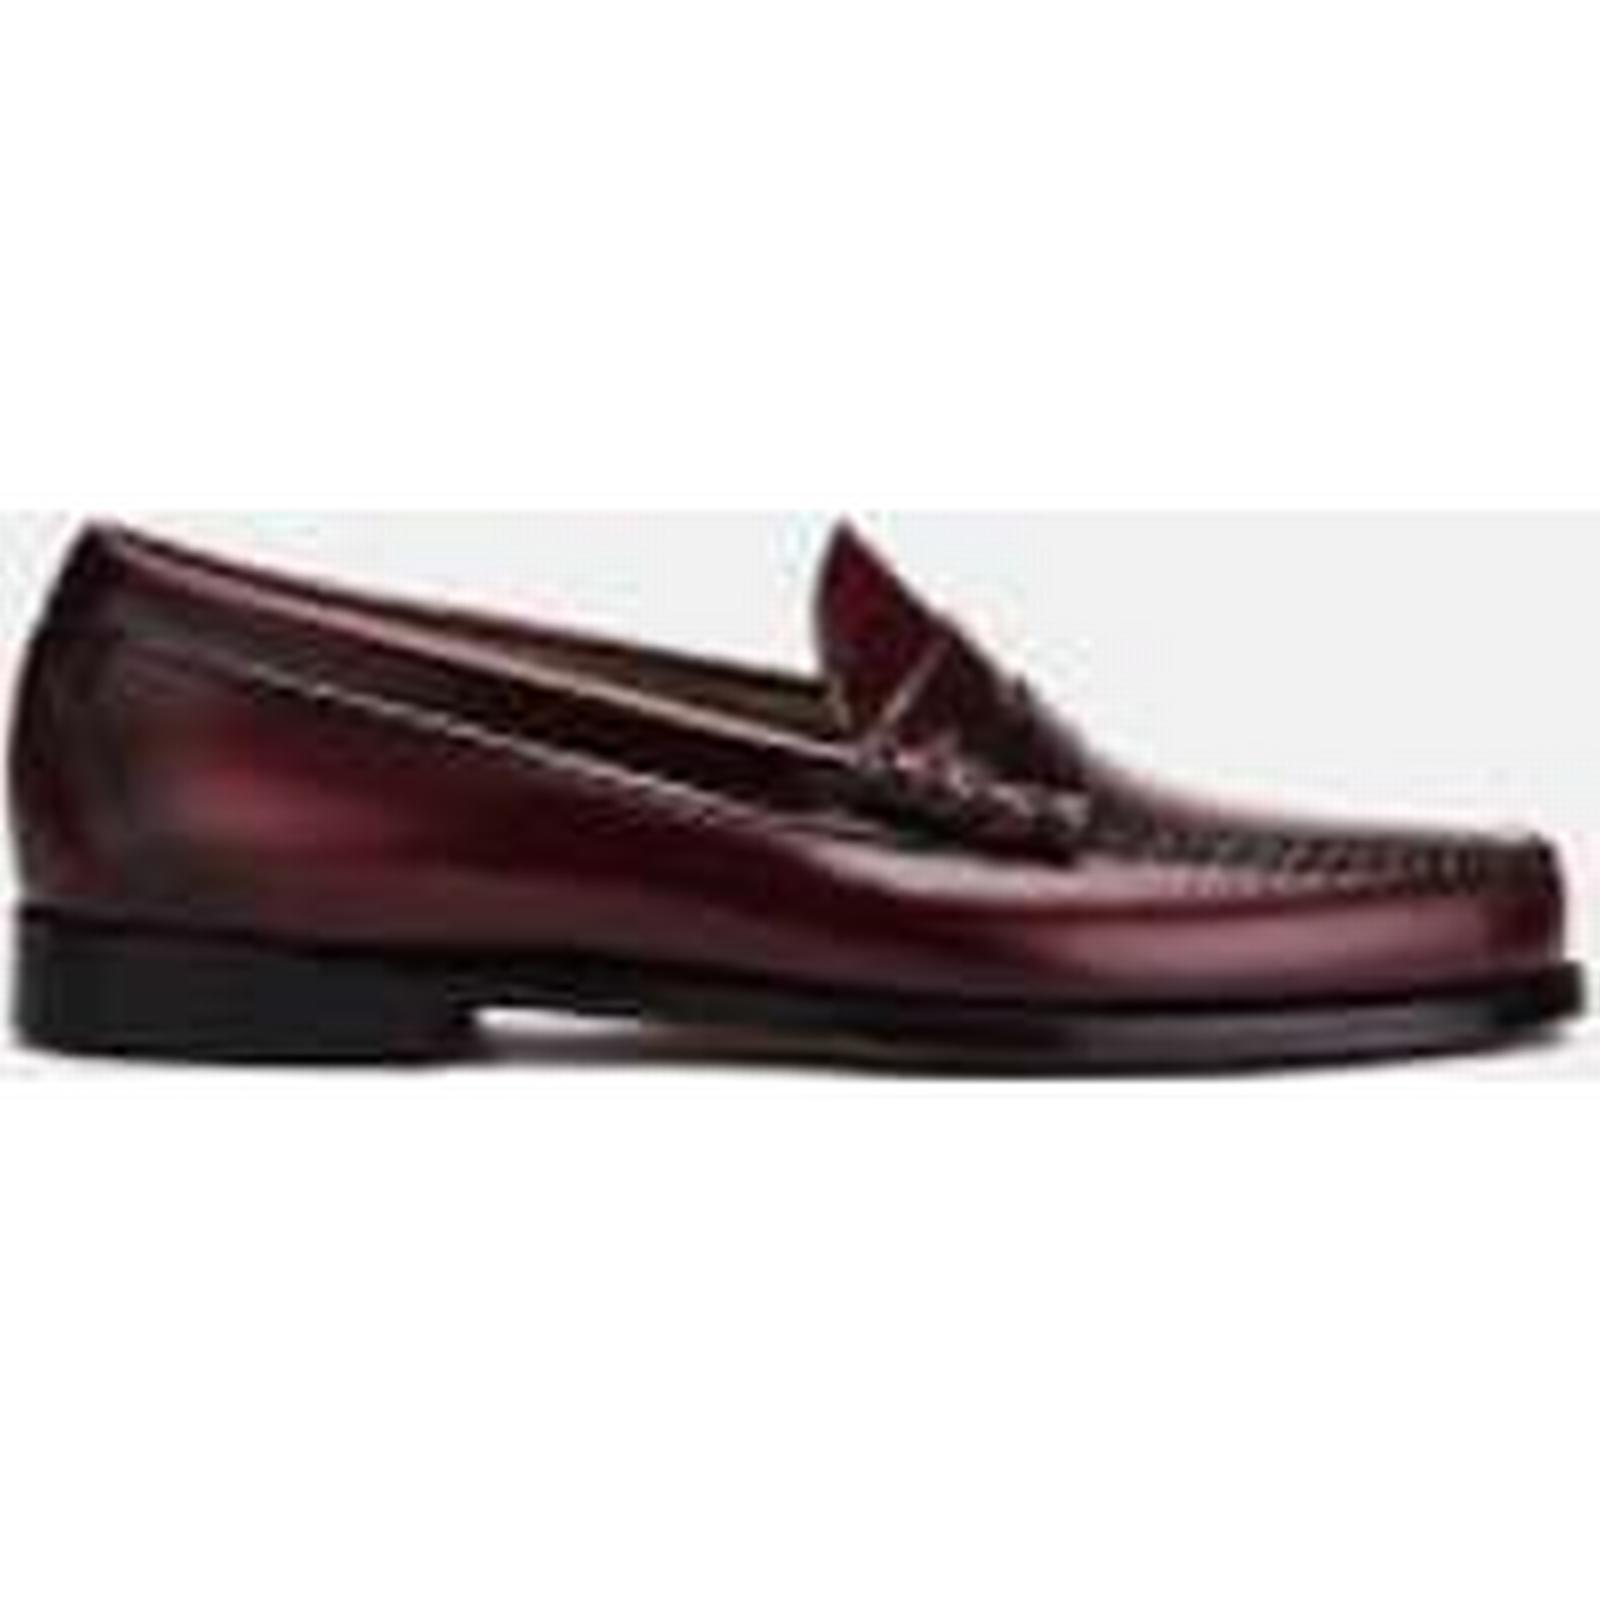 bass weejuns hommes & # ; s larson gpm - cuir mocassins - vin - gpm royaume - uni  - bourgogne 825f19